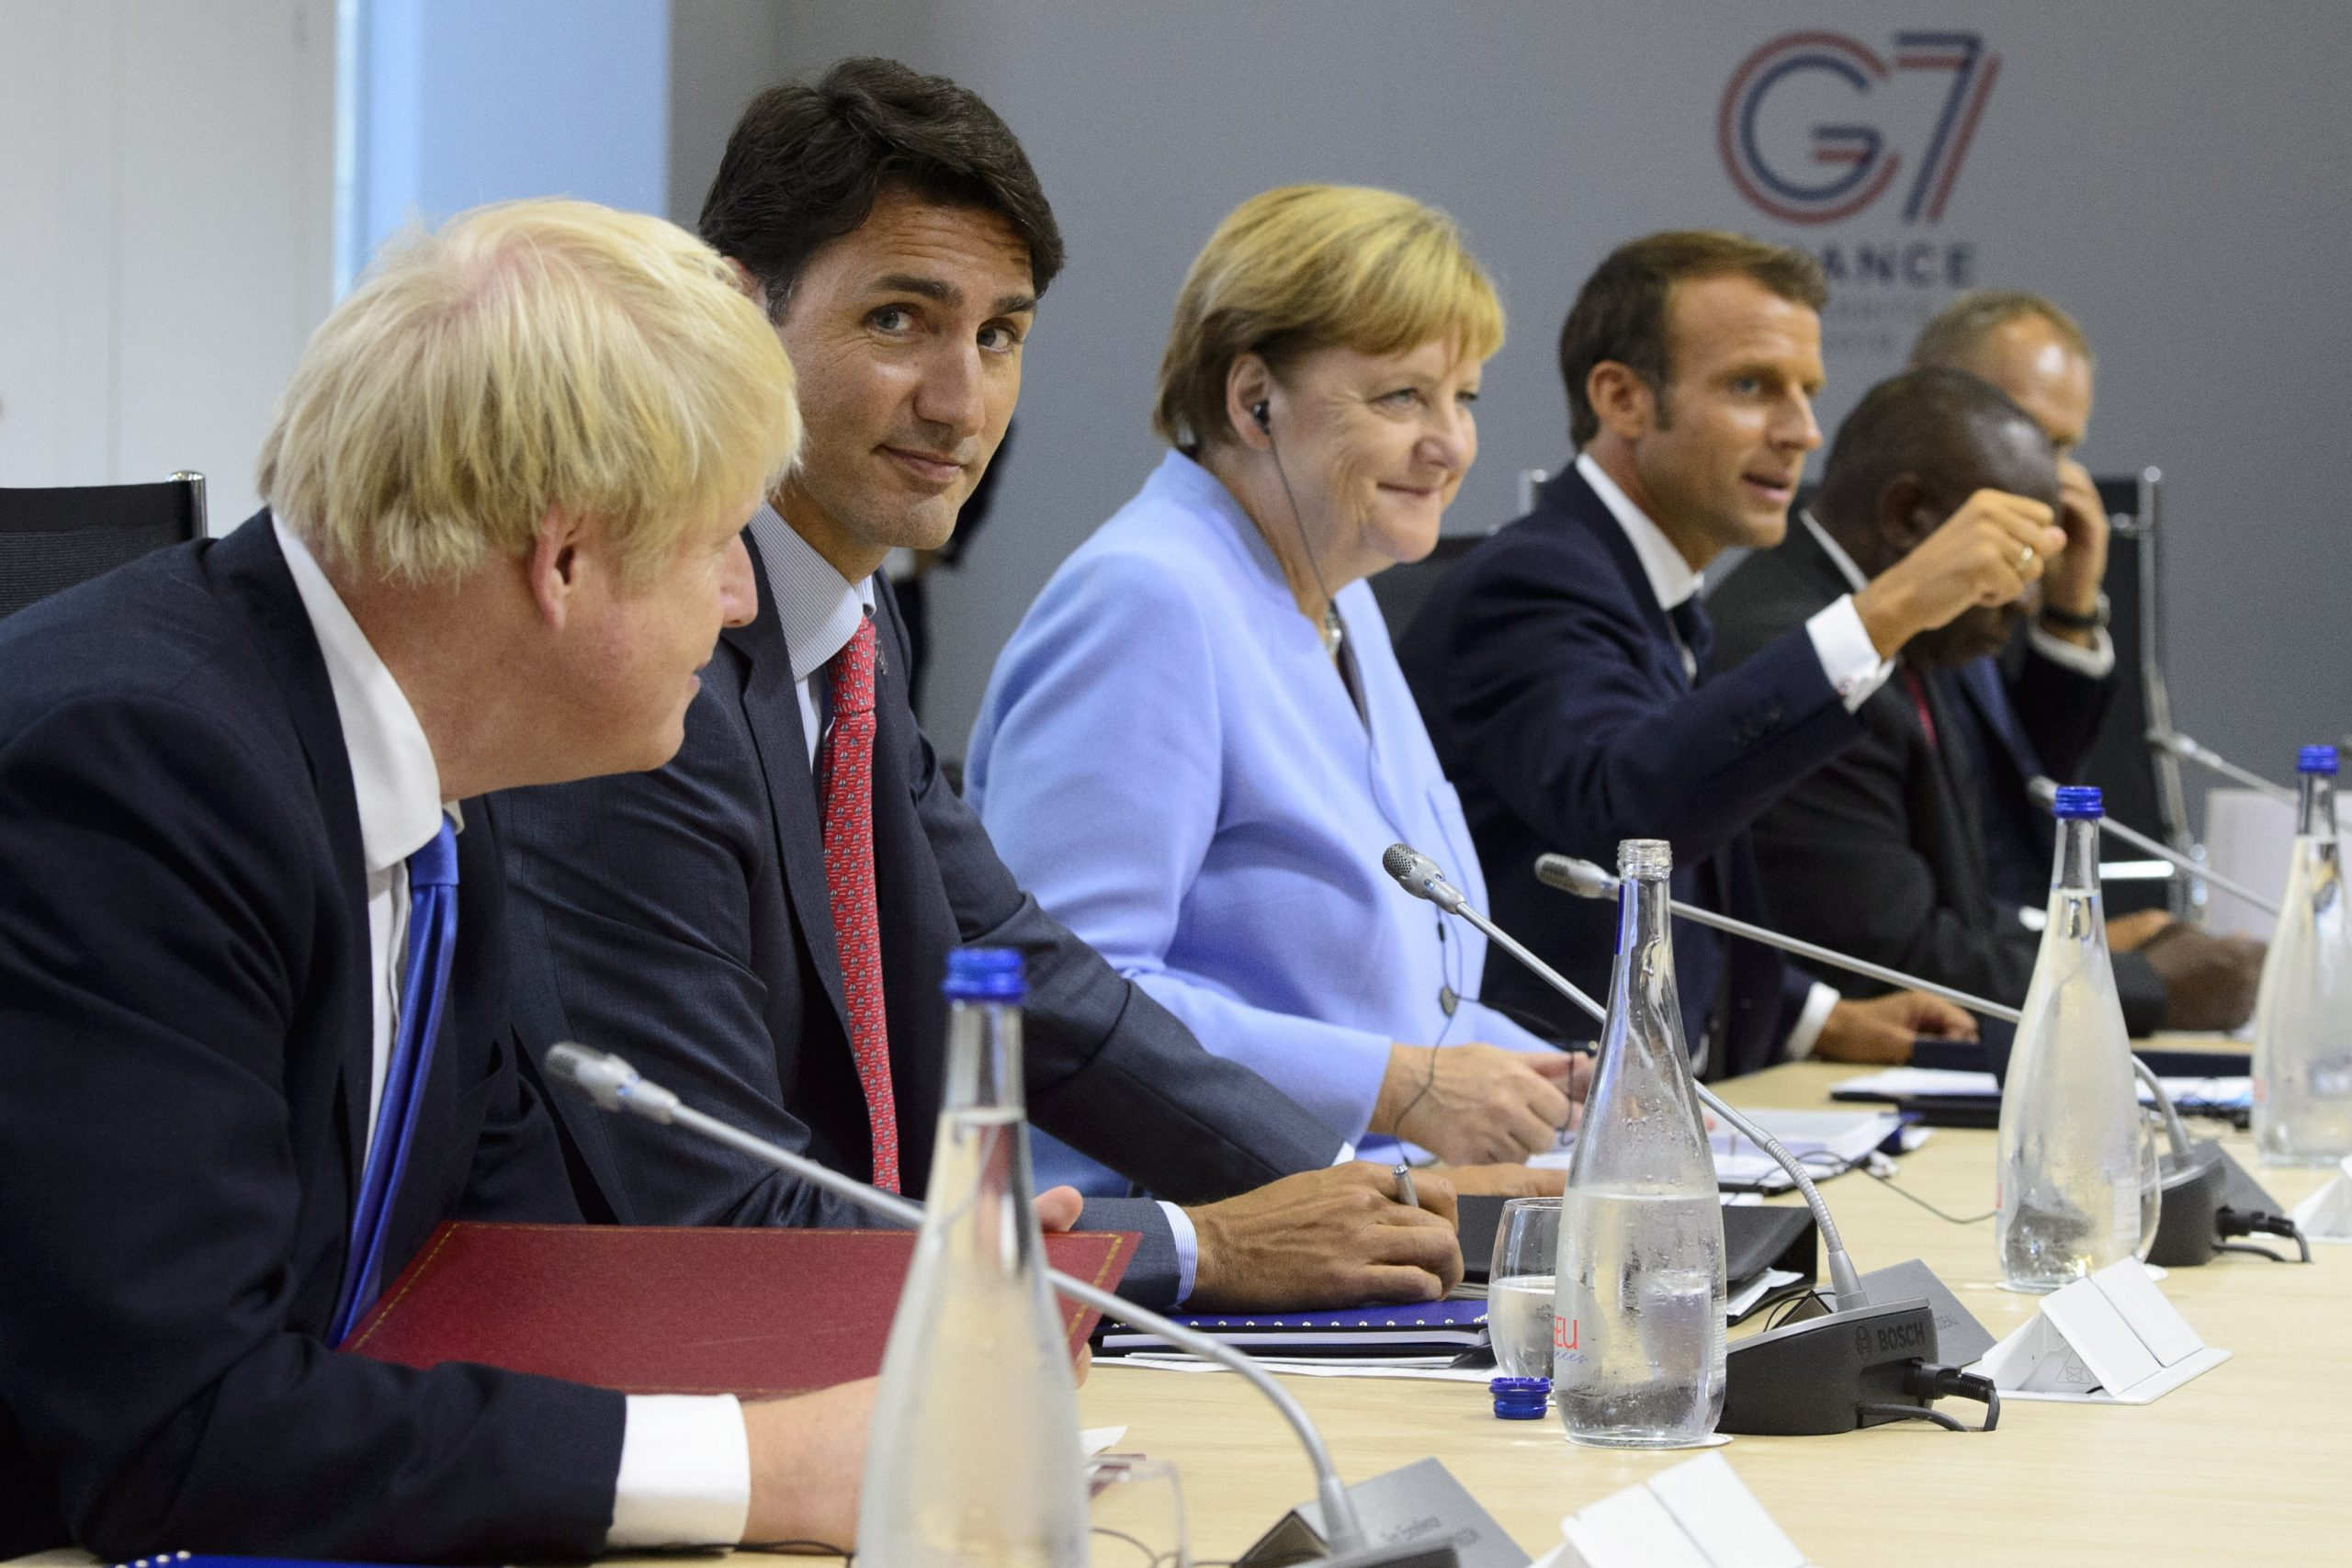 Justin Trudeau, second from left, sits between Boris Johnson (L), Angela Merkel at the G7 Summit in Biarritz, France, 26 Aug. 2019 - Photo Sean Kilpatrick/The Canadian Press via AP